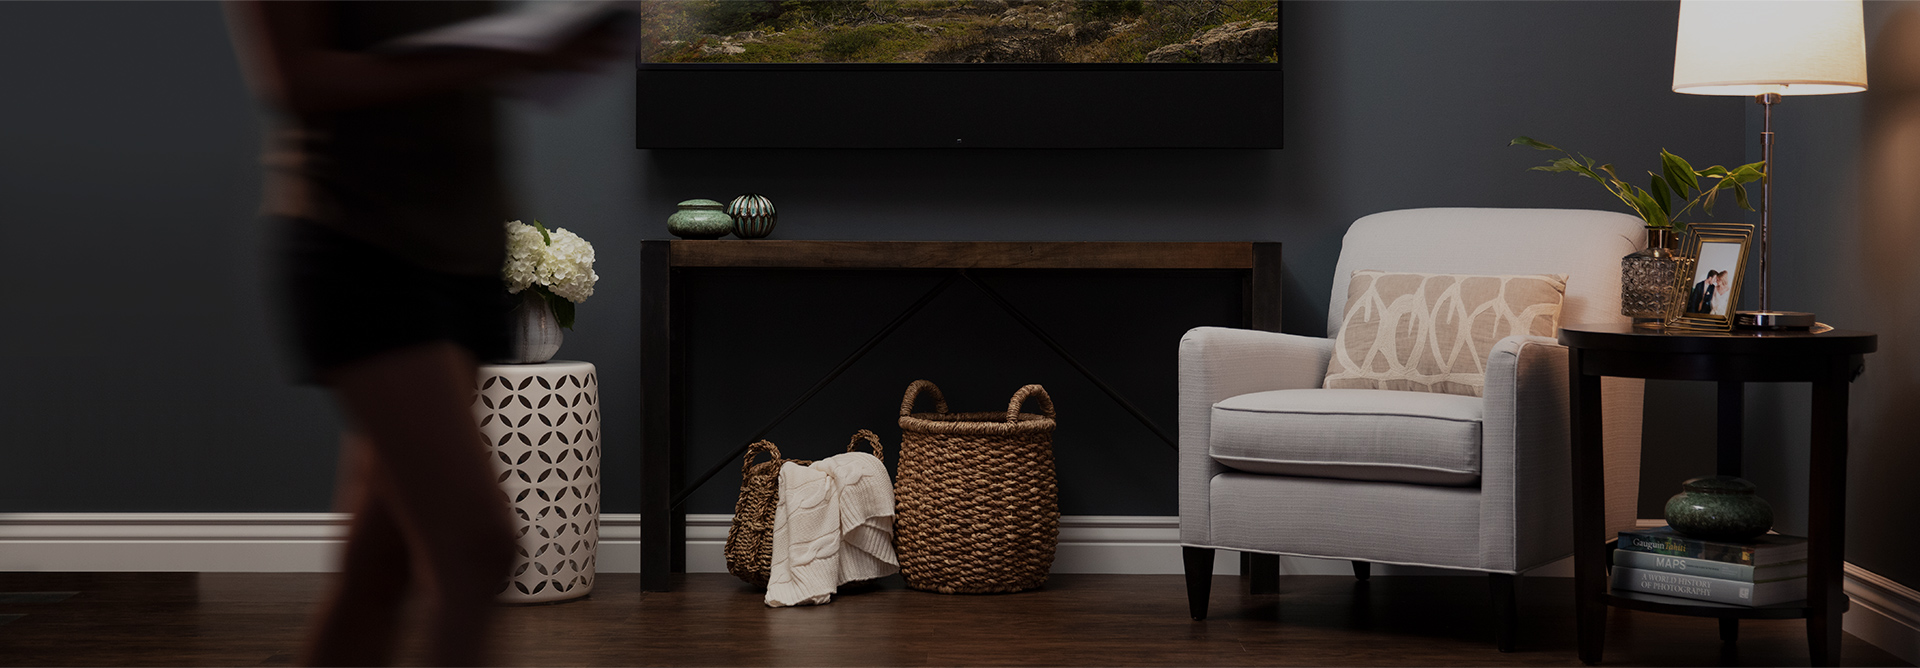 Custom Soundbars Built to Match any TV - Horizon Series soundbars are custom built to match the exact width of any TV, providing high-performance audio with a discreet aesthetic, perfect for any system.